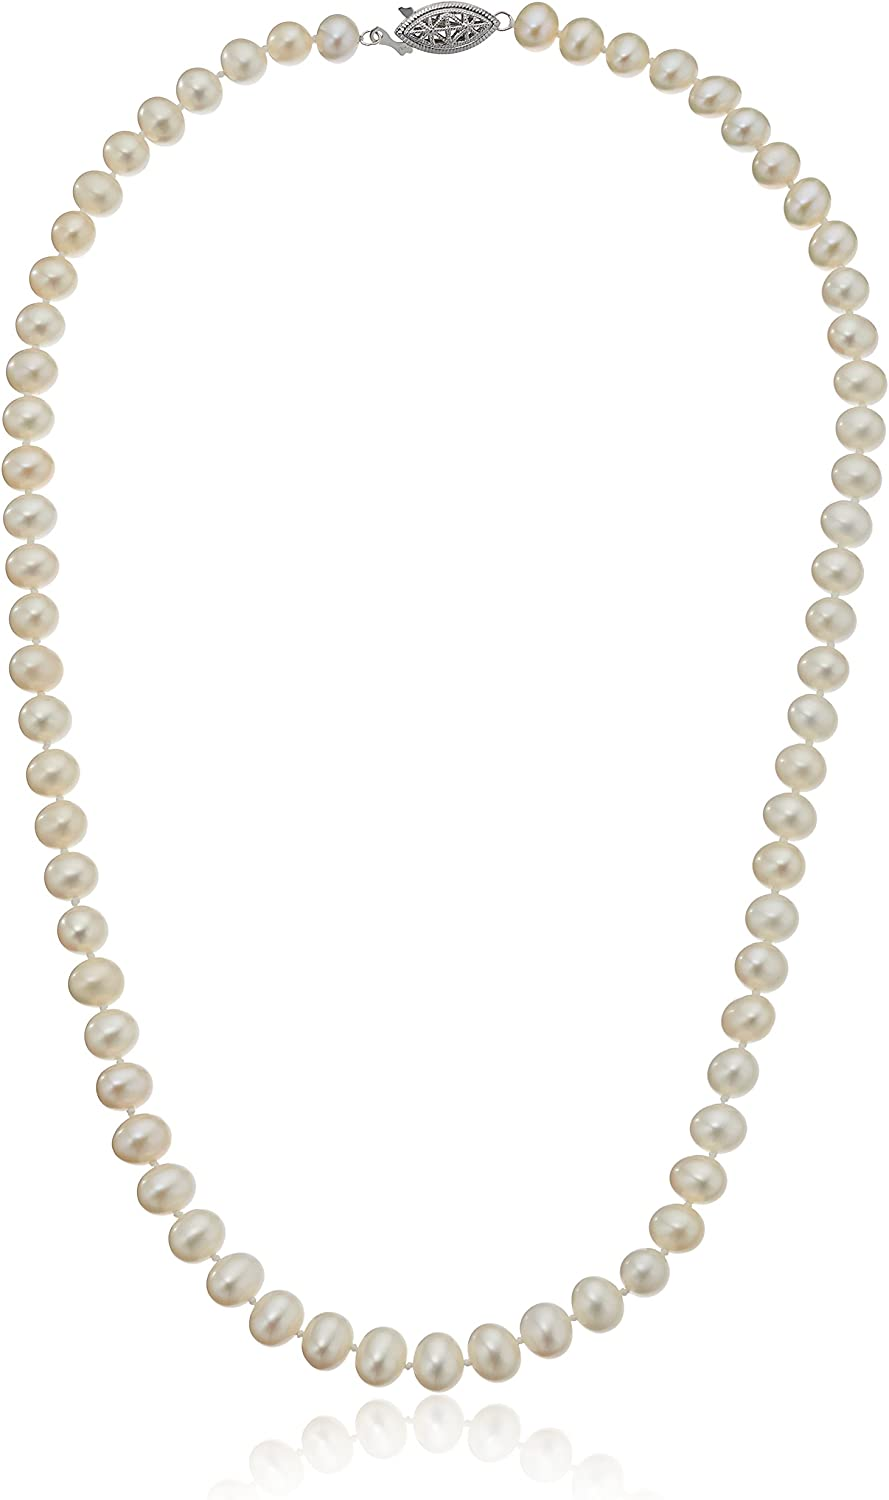 Sterling Silver A-Quality White Ranking integrated 1st place Max 90% OFF Pearl Neckla Freshwater Cultured